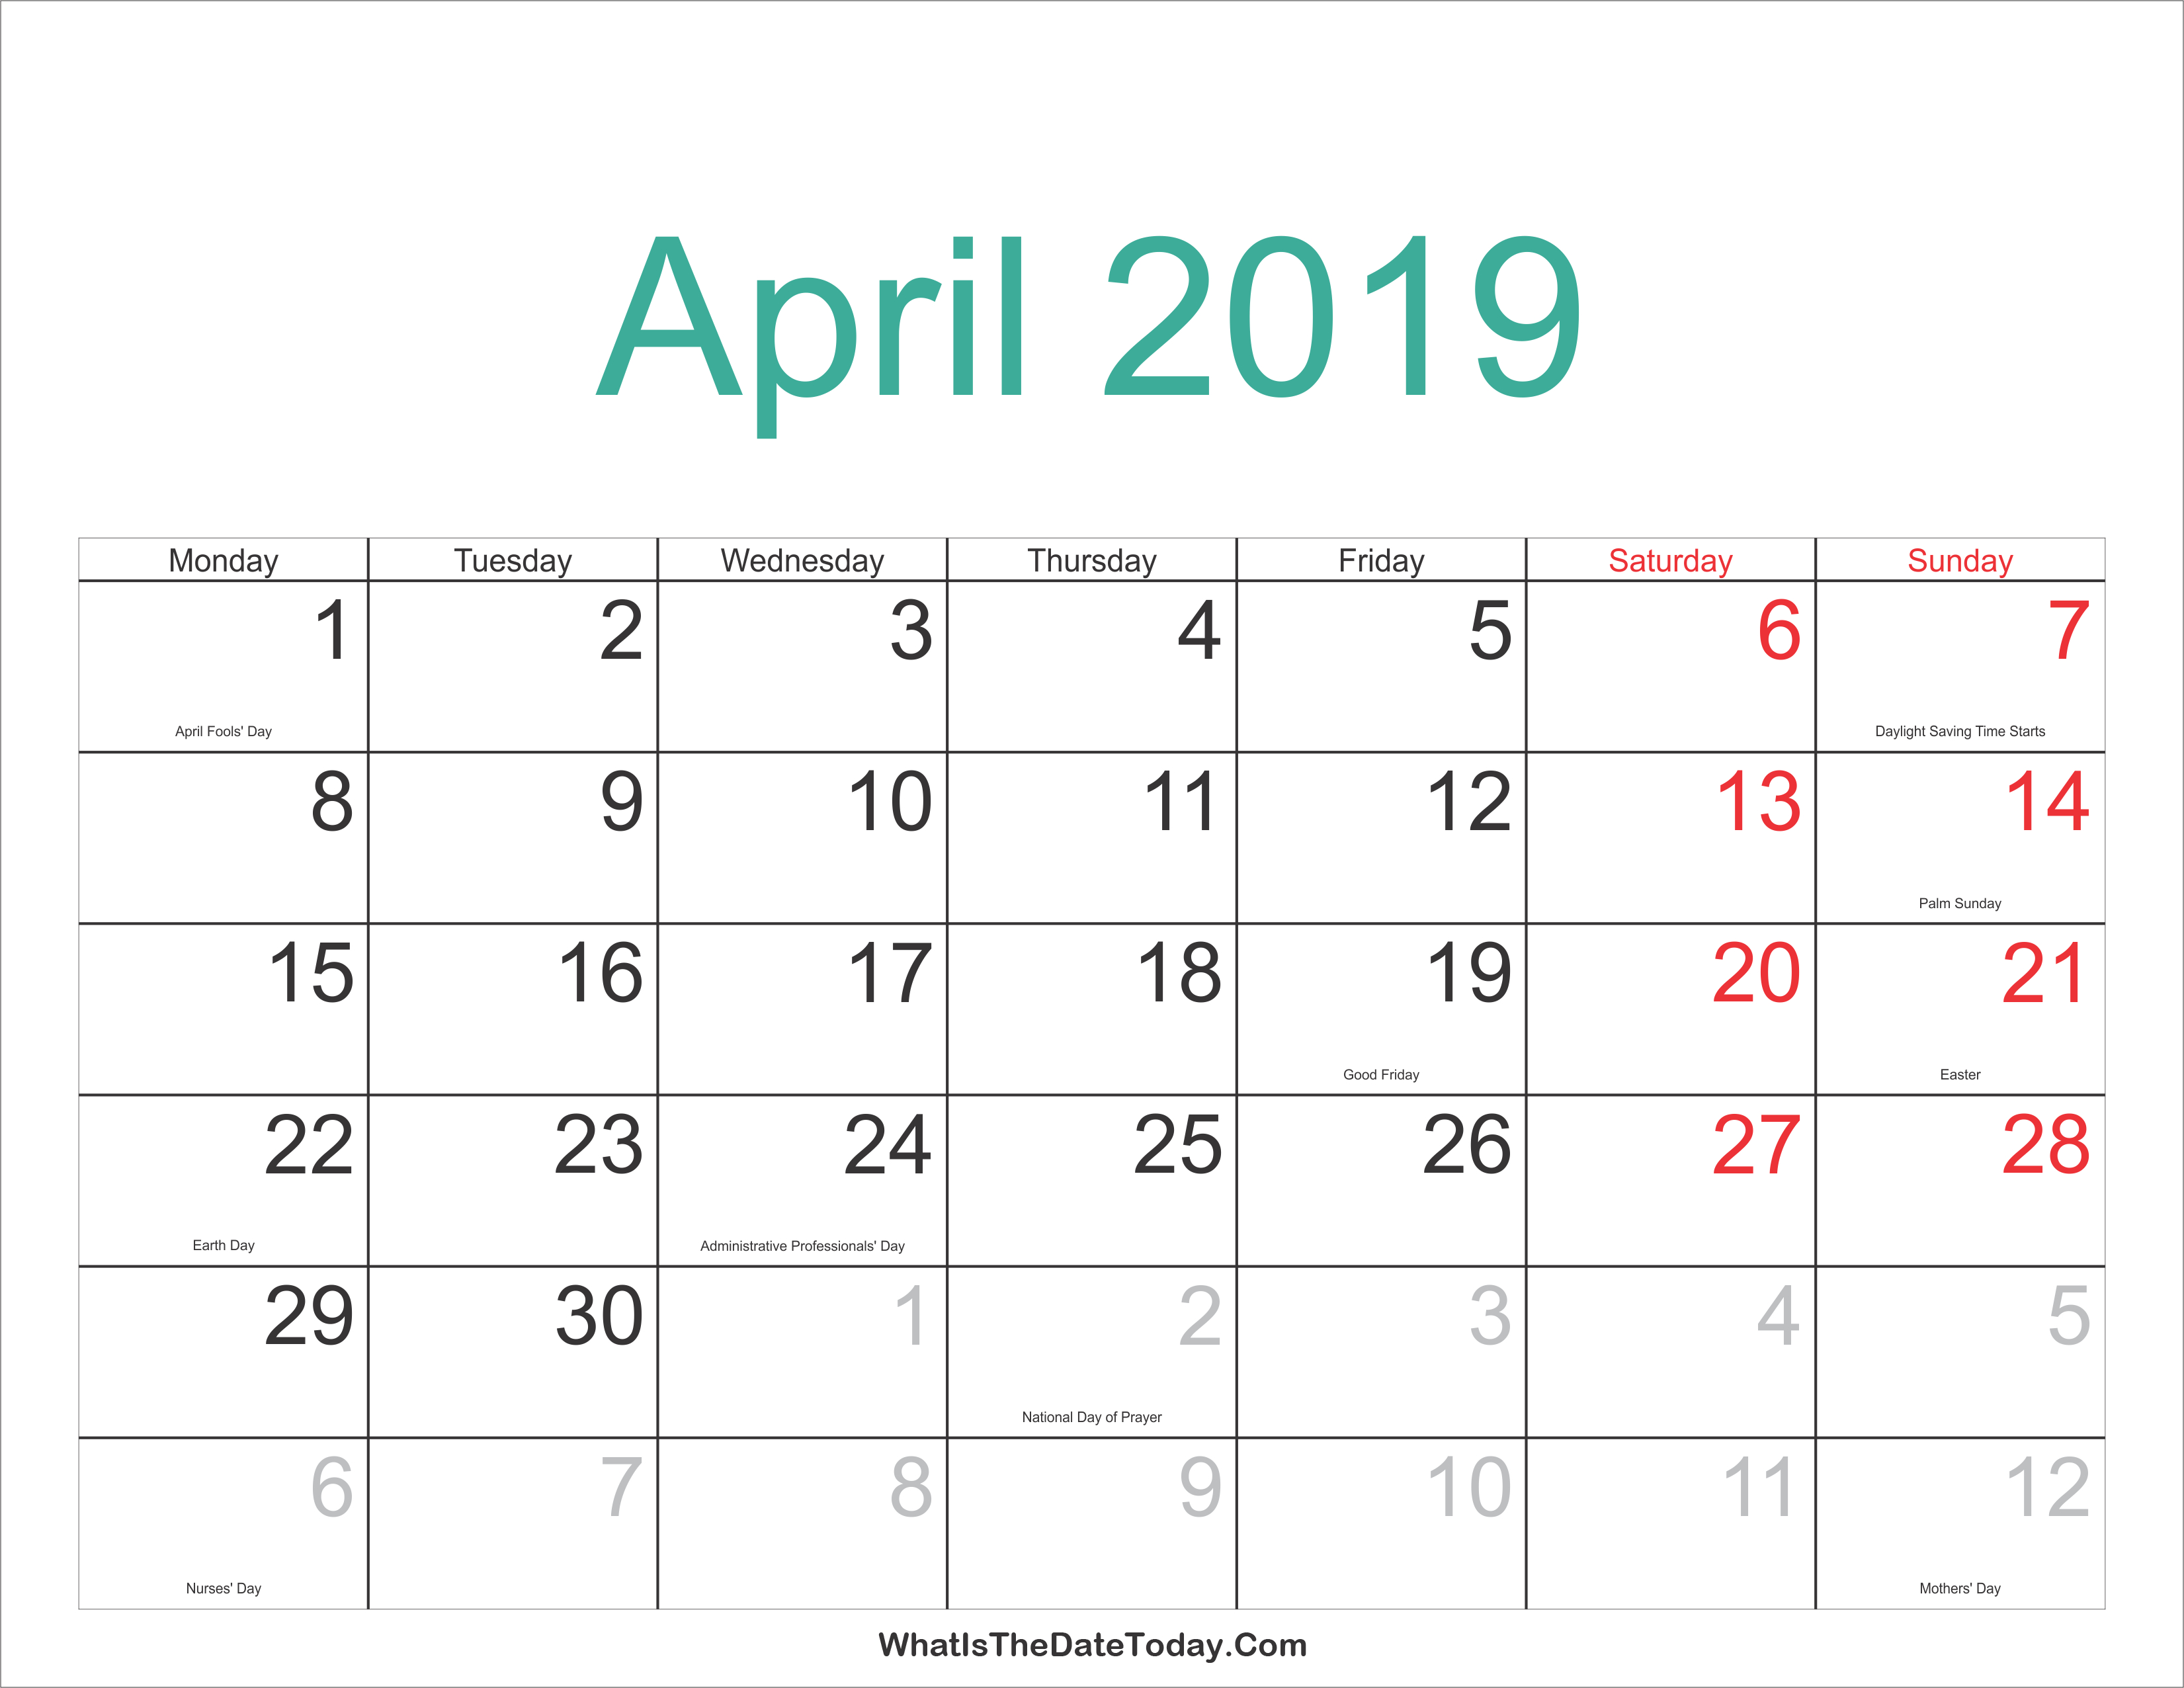 April 2019 Calendar With Holidays Us | April 2019 Calendar Printable Calendar 2019 Easter